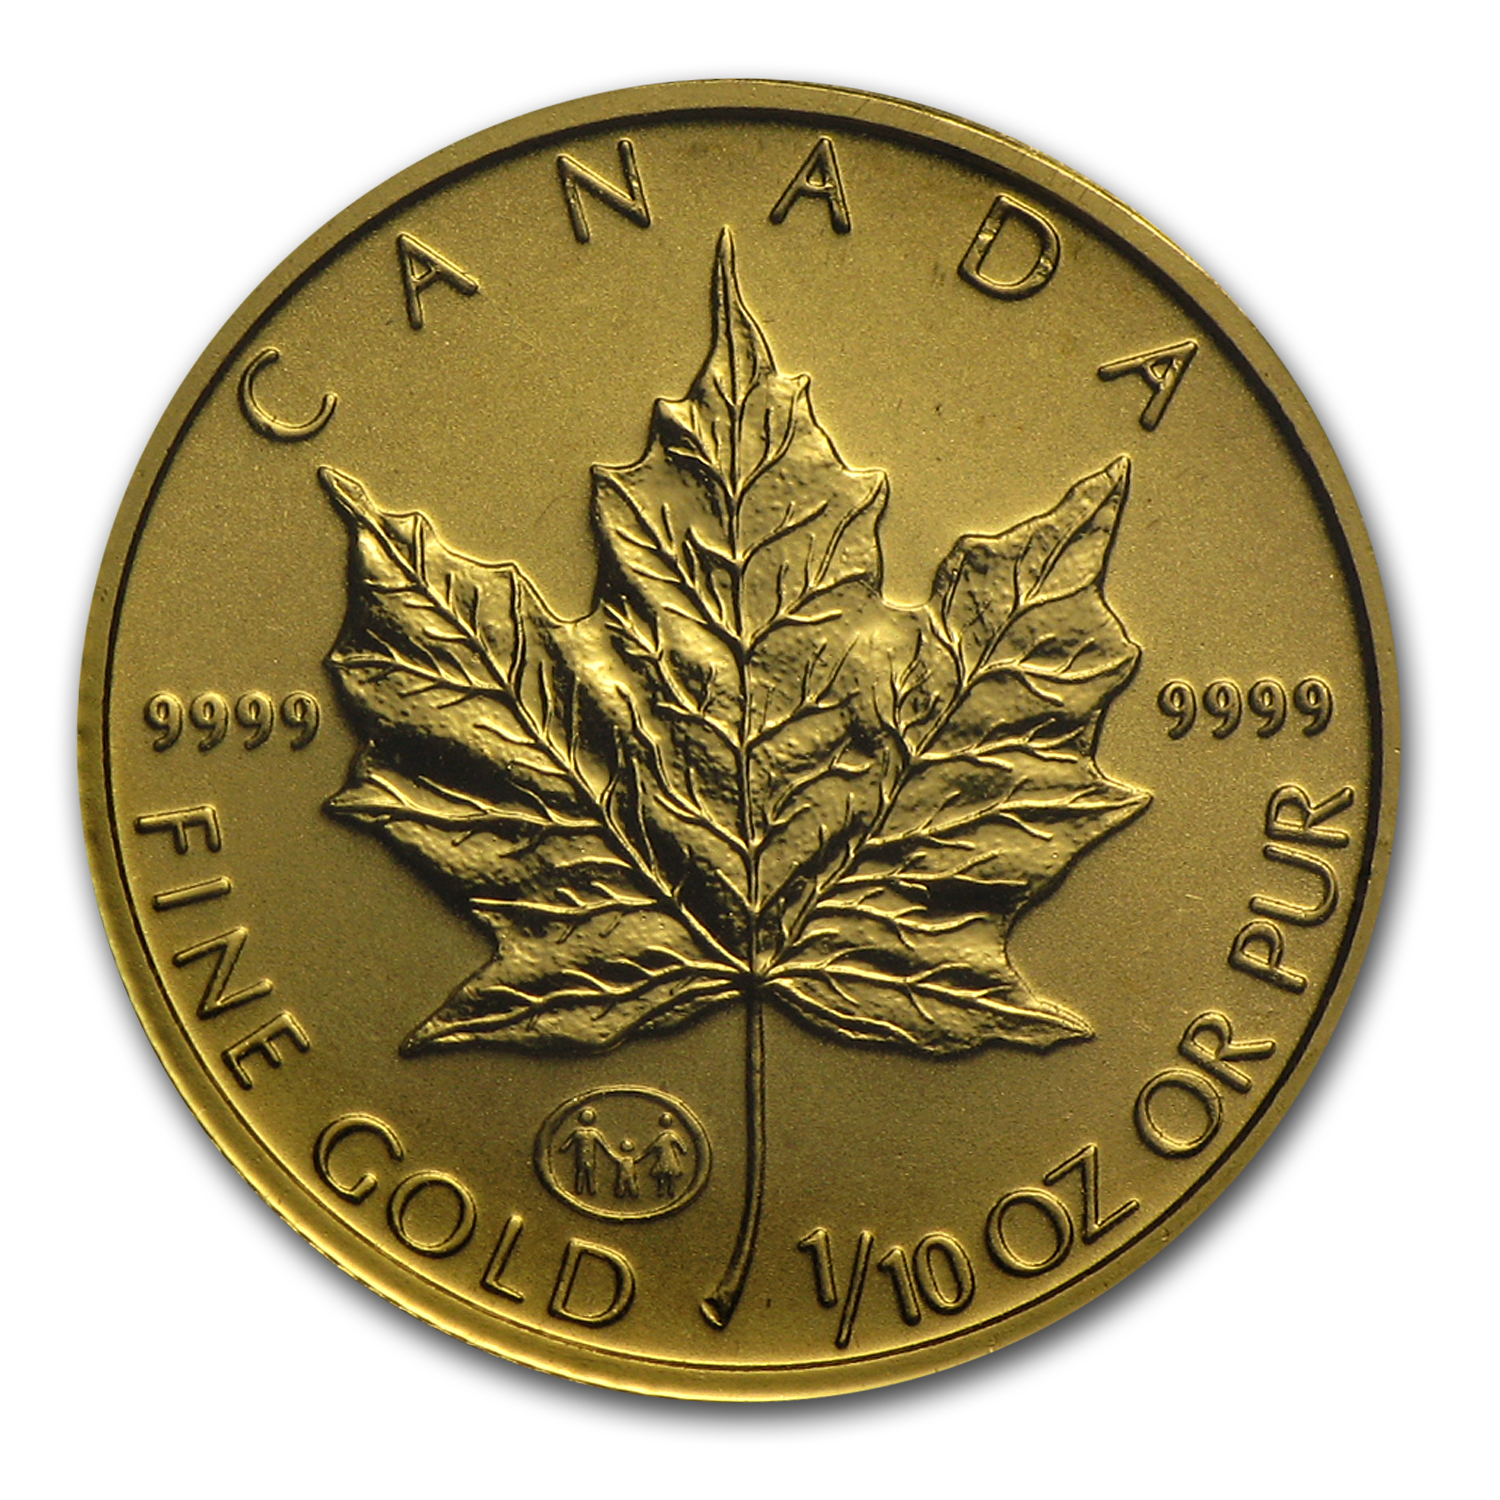 1997 1/10 oz Family Privy Gold Canadian Maple Leaf